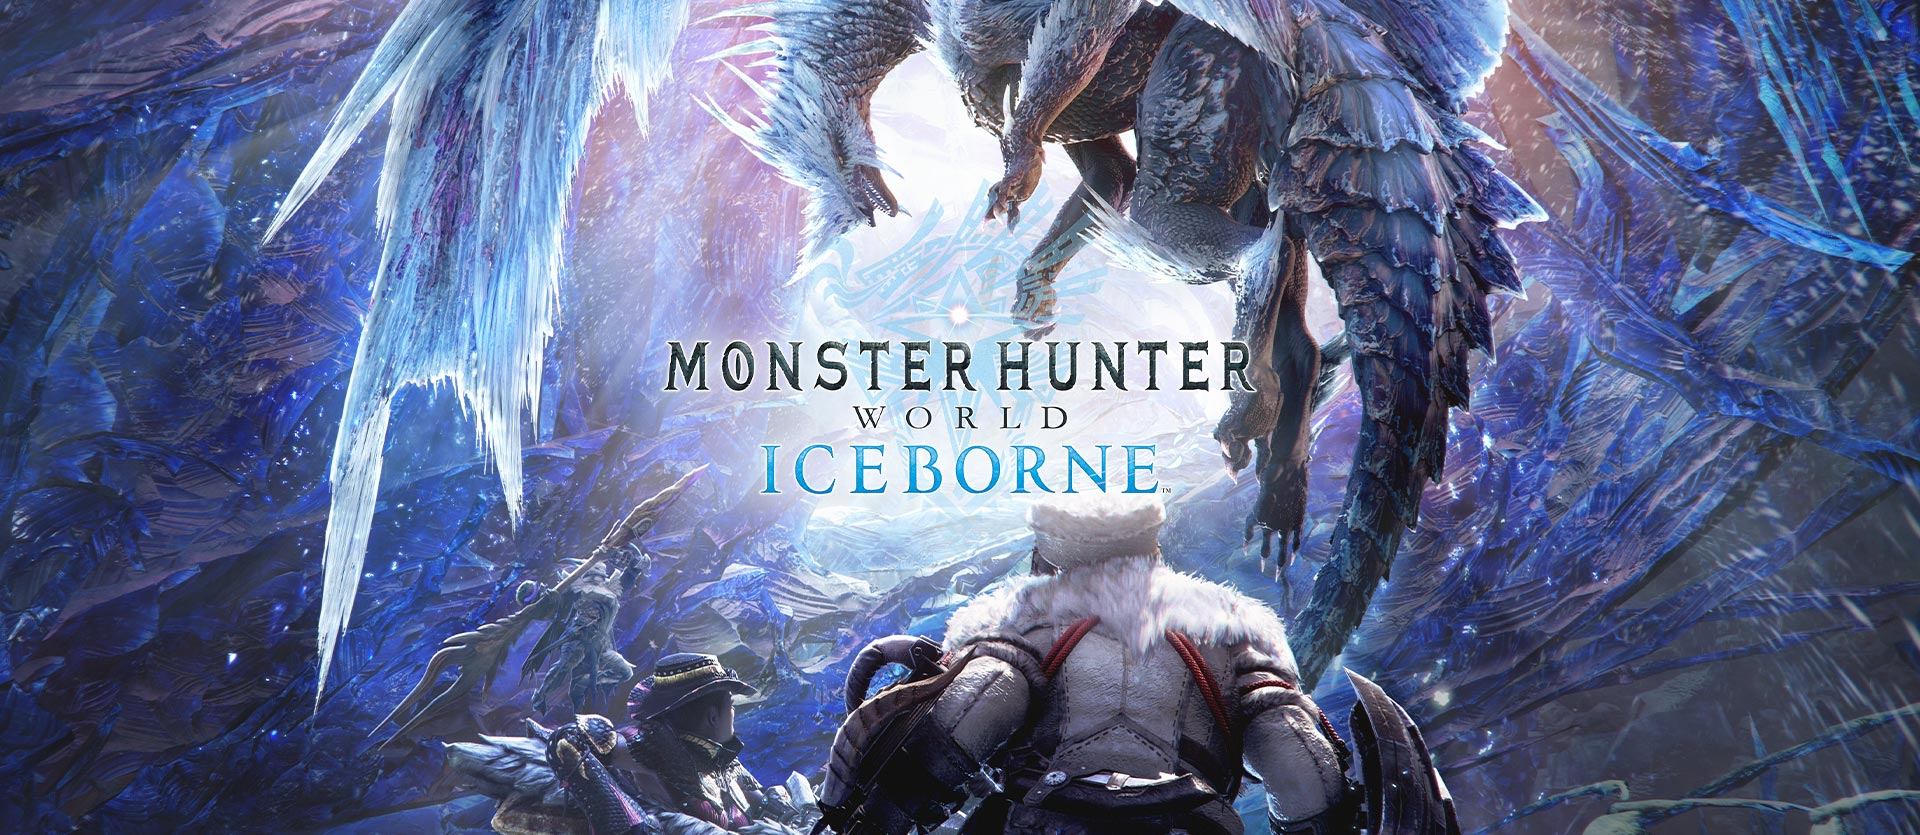 Monster Hunter World - Chasseurs de monstres faisant face à un dragon de glace entouré d'immenses cristaux